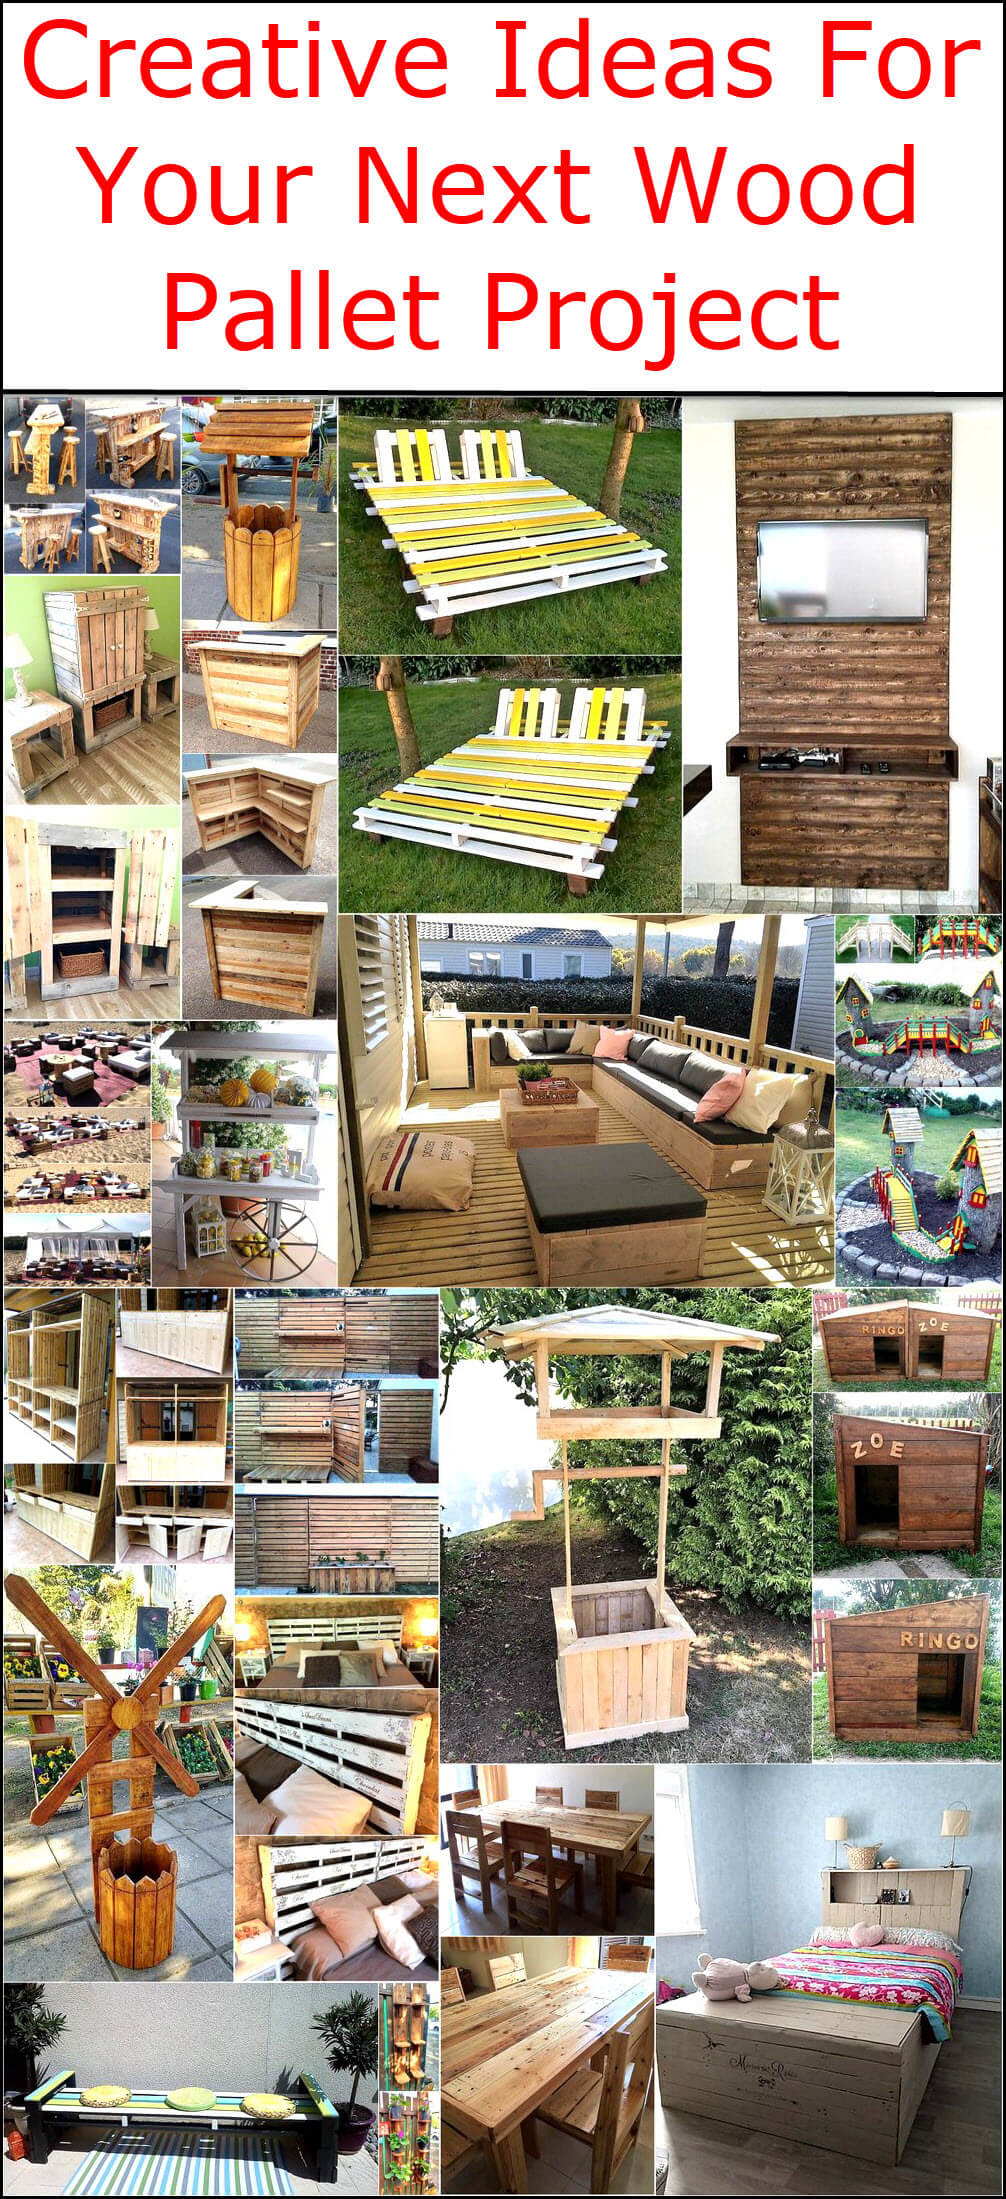 Creative Ideas For Your Next Wood Pallet Project Pallet Ideas